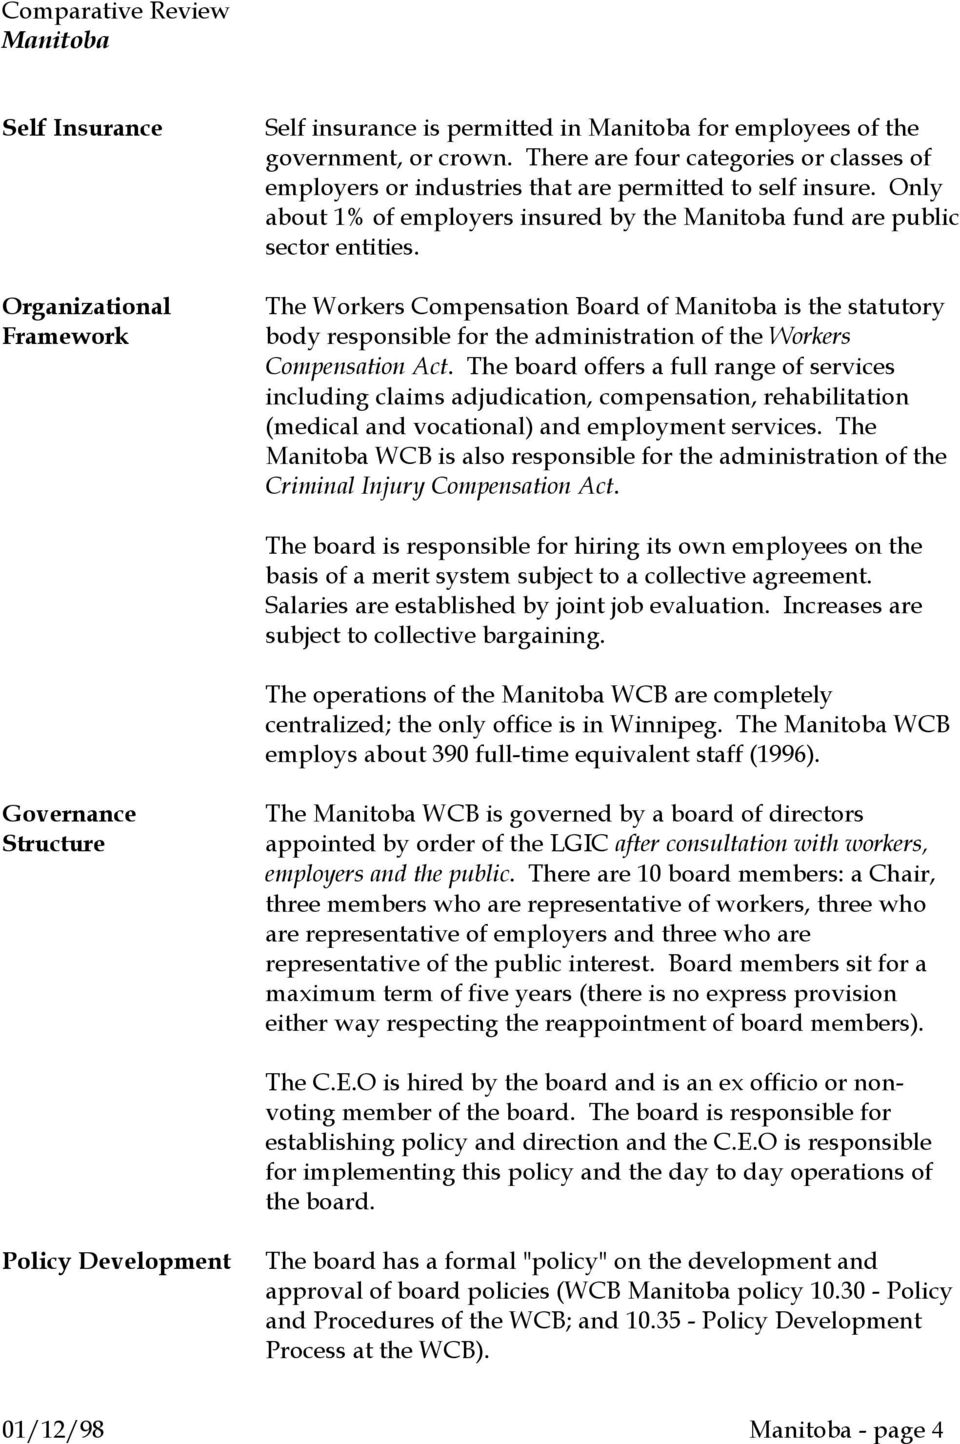 The Workers Compensation Board of is the statutory body responsible for the administration of the Workers Compensation Act.